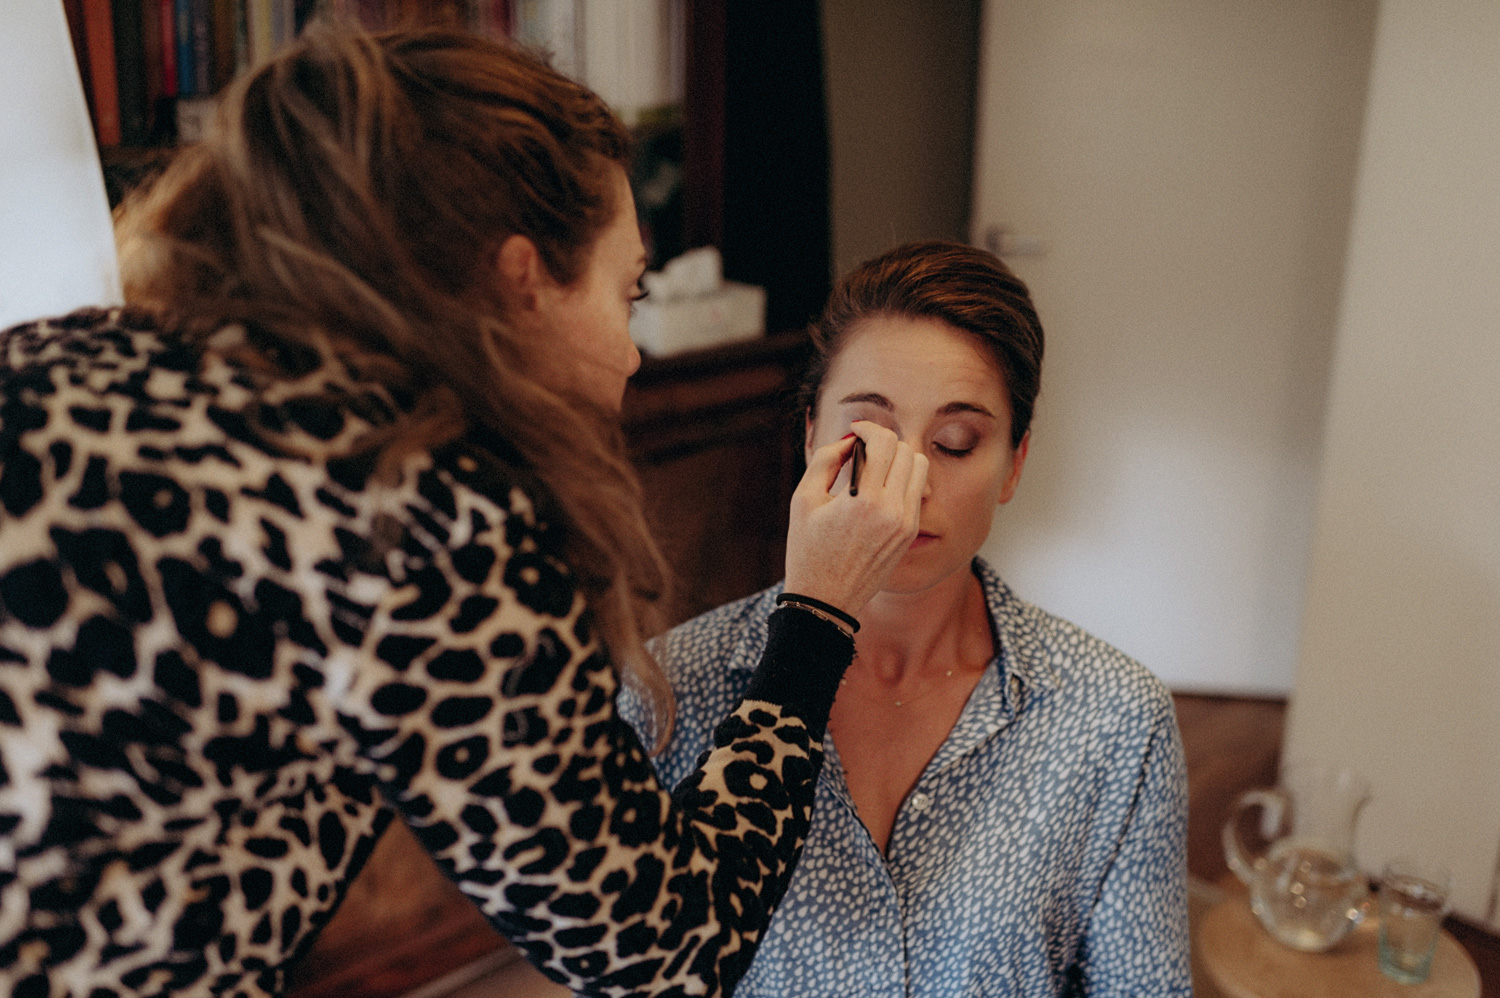 Bride getting her make-up done while getting ready